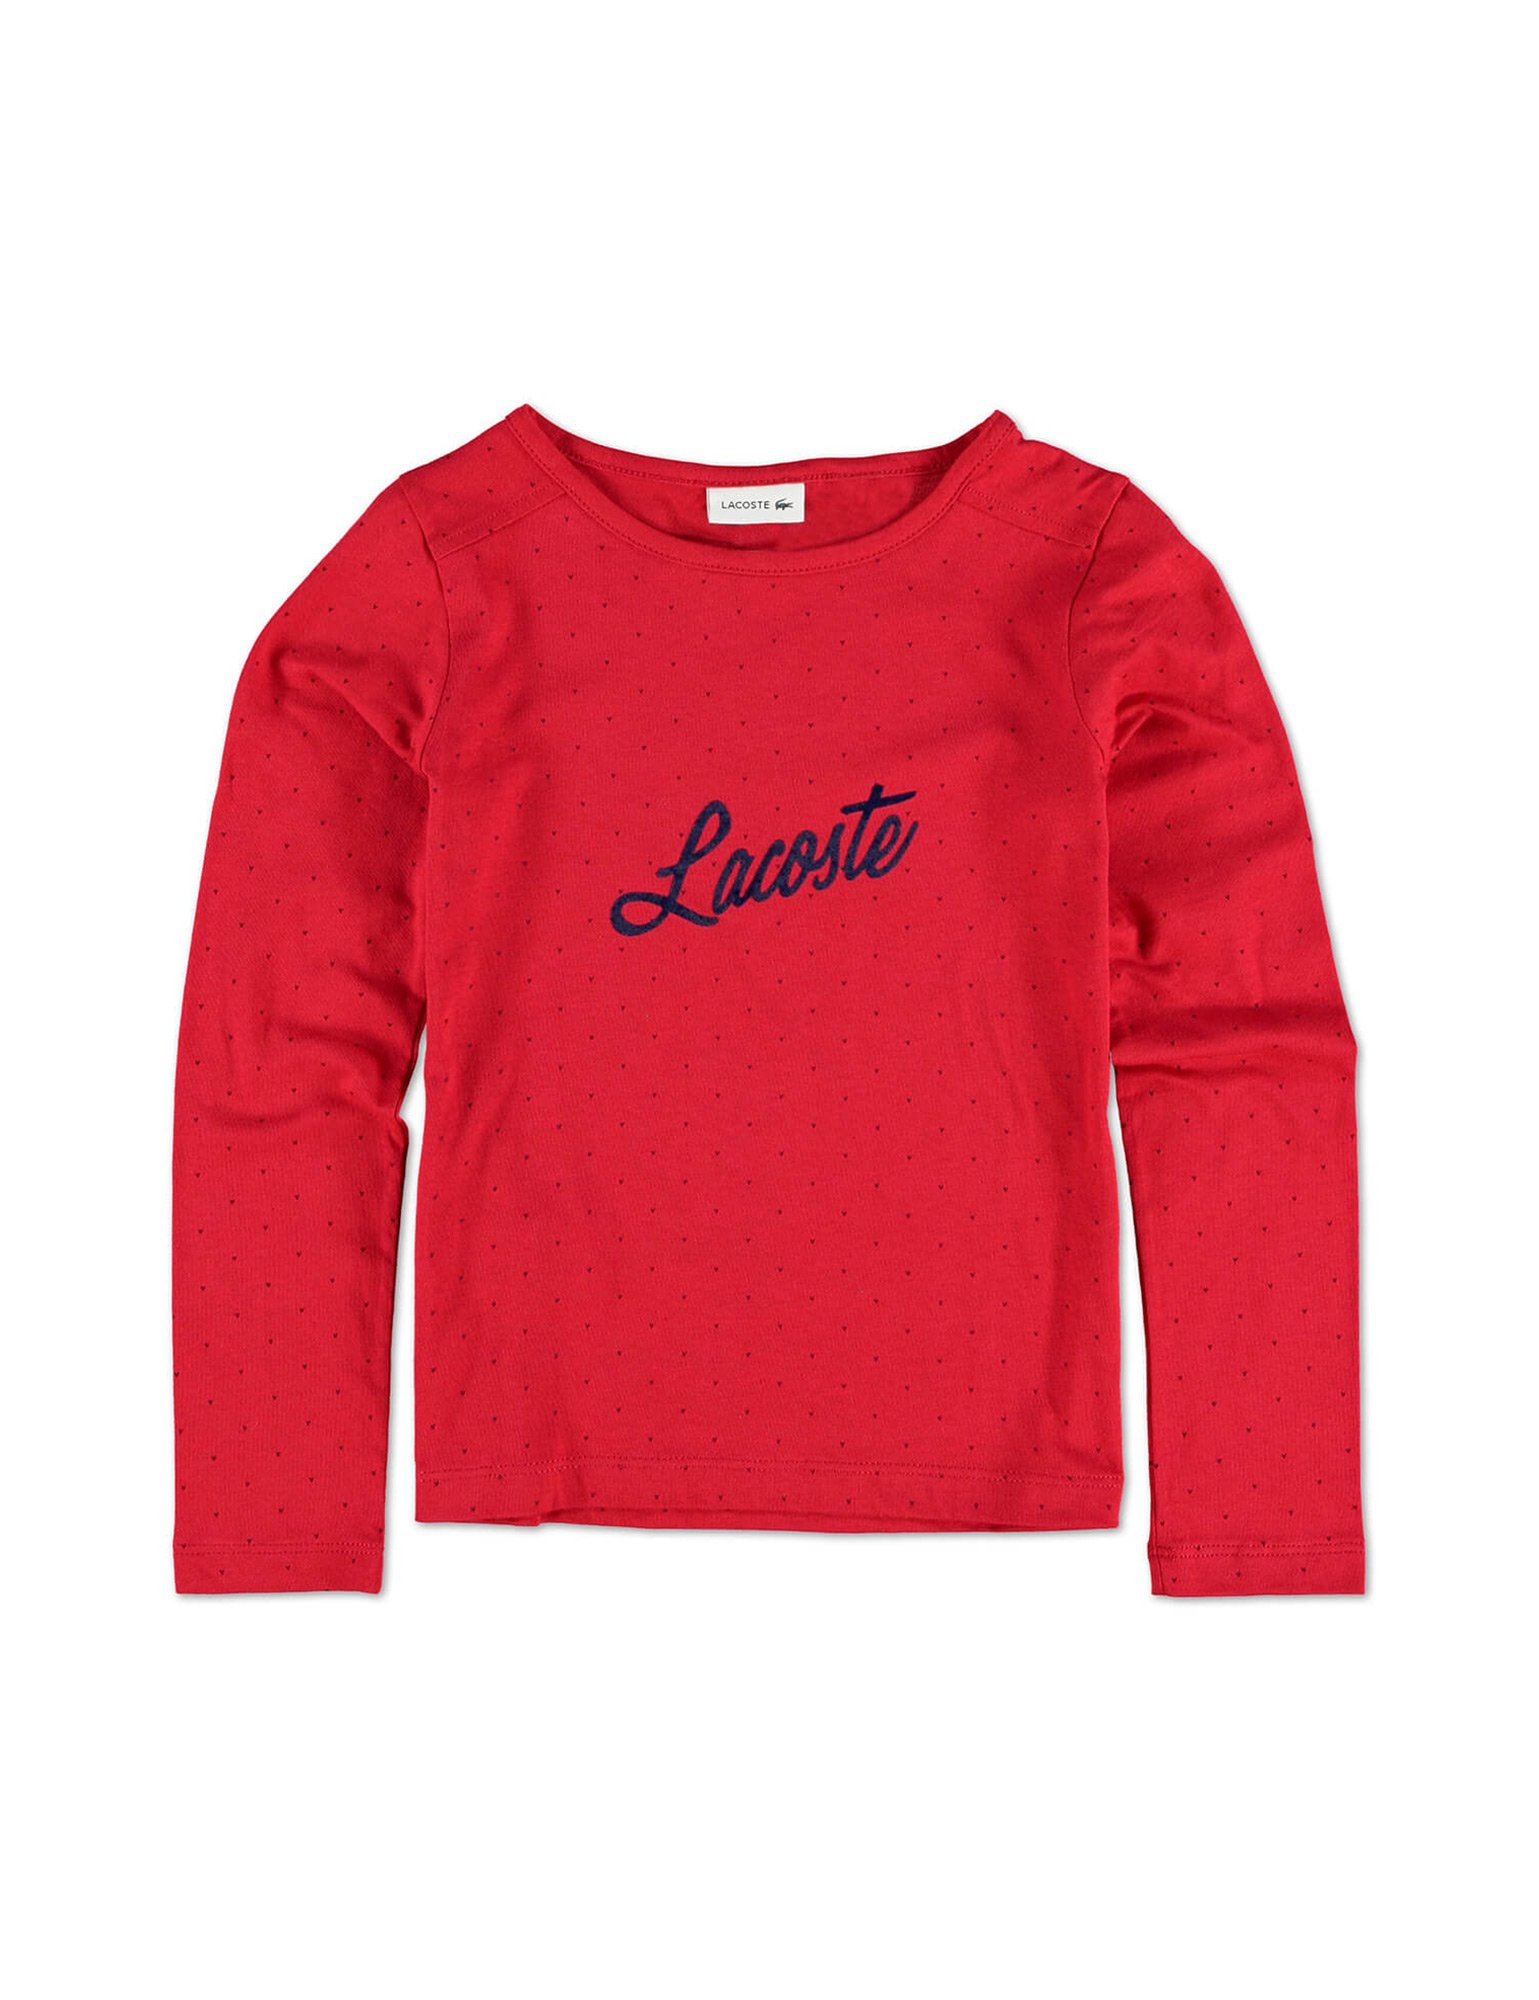 Lacoste Girl's Red Long Sleeve T-Shirt in Size 8 Years (128 cm) Red